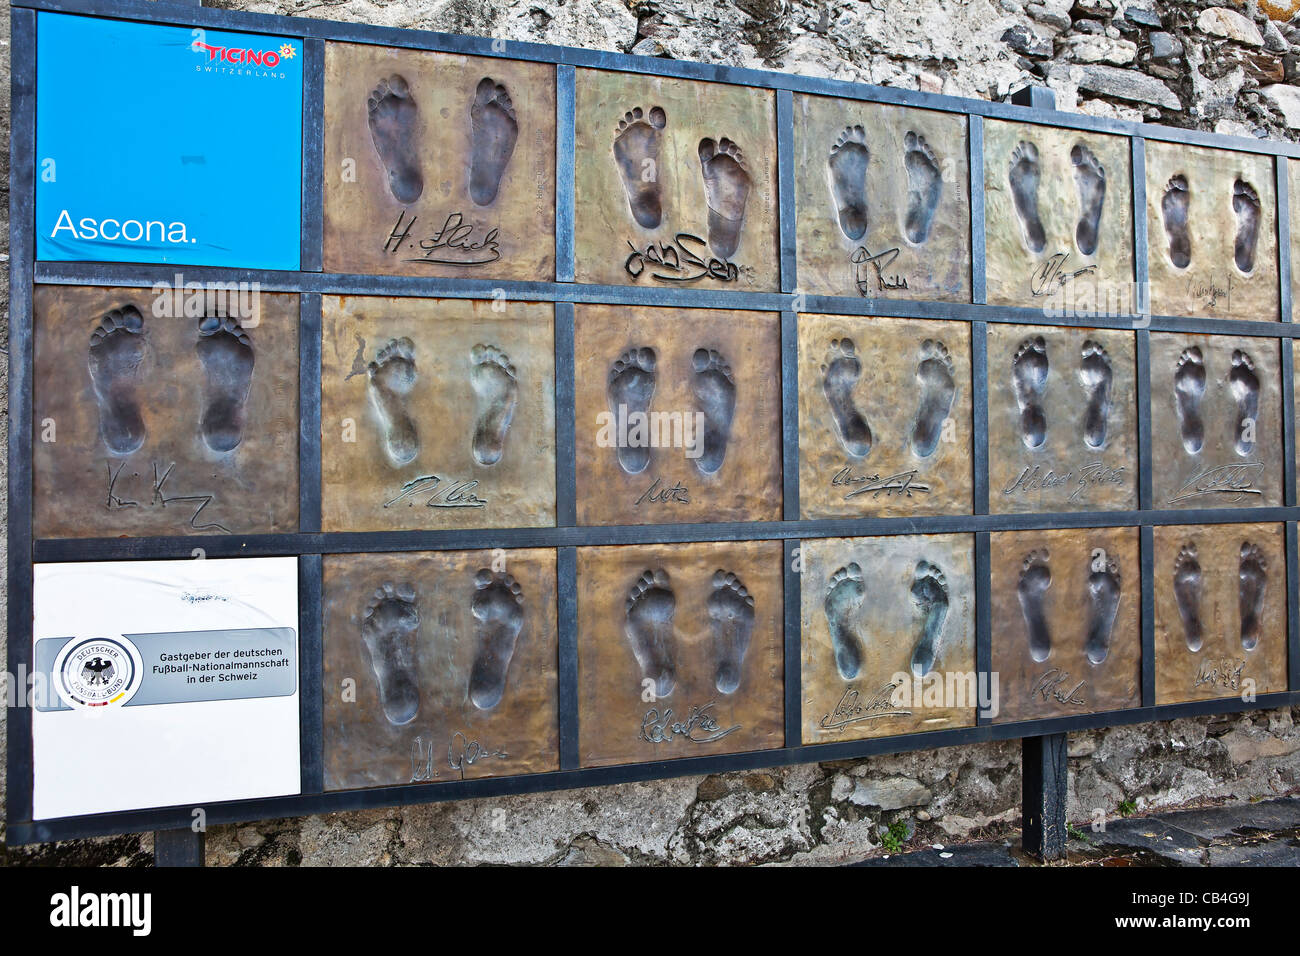 Footprints of the German national team as a reminder of their stay on the occasion of Euro 2008 in Ascona, Ticino, - Stock Image